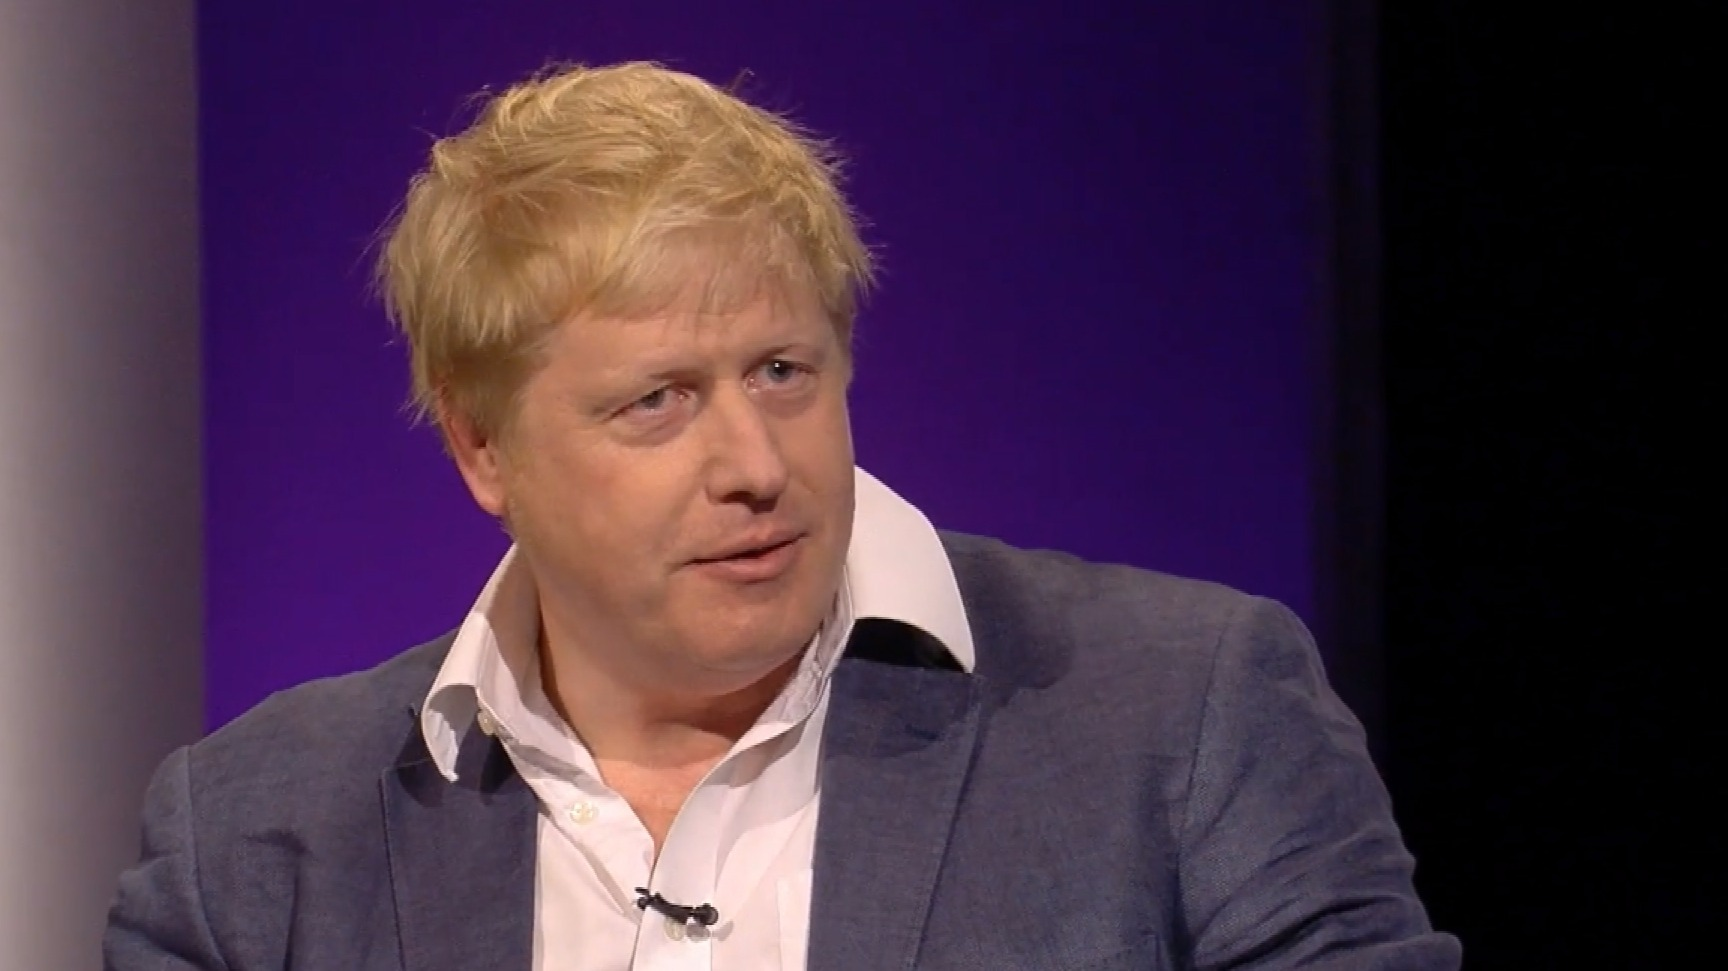 IDS 'should have stayed in Cabinet', says Boris Johnson ...